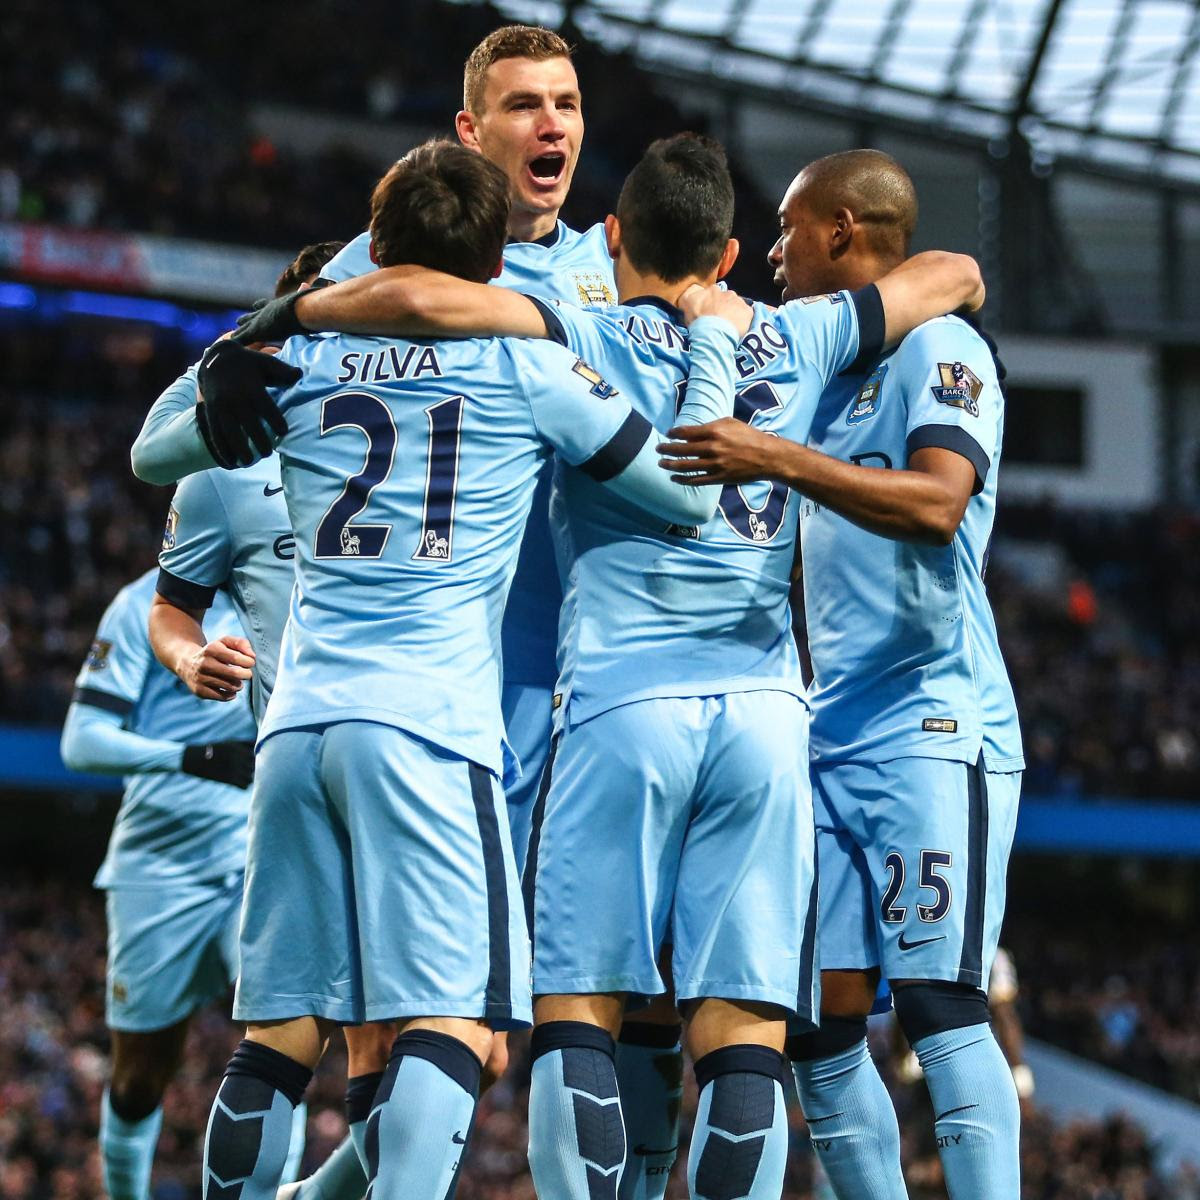 Manchester City vs. West Brom: Live Score, Highlights from ...